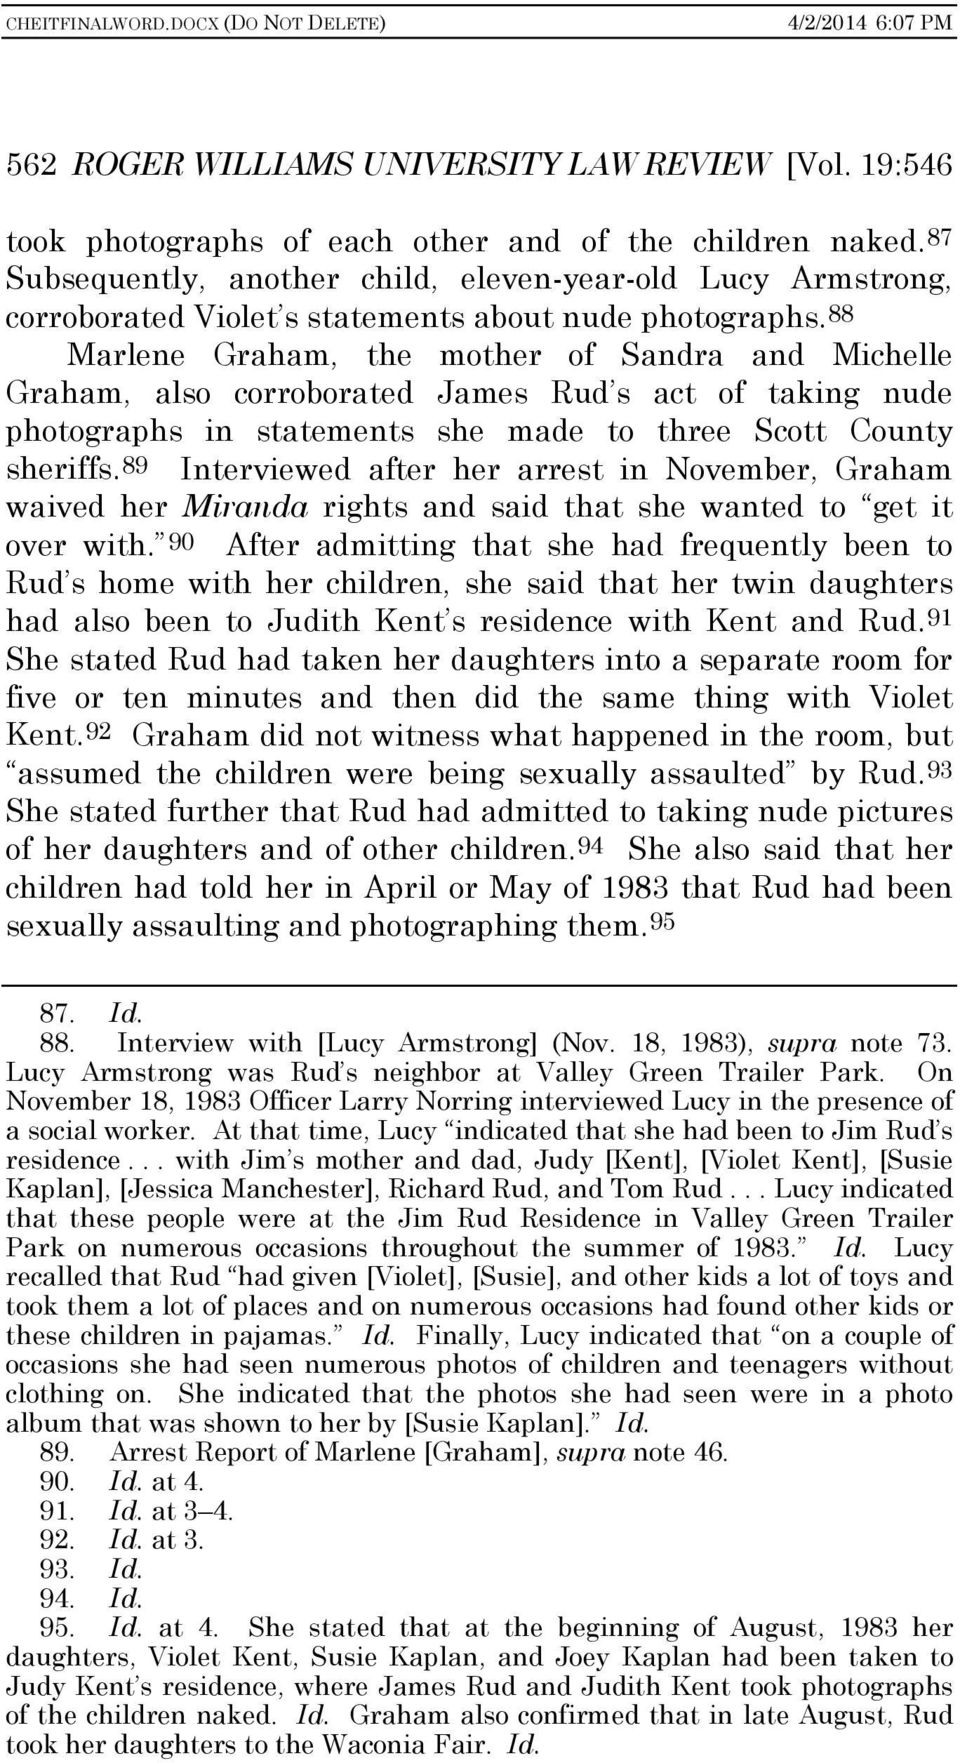 88 Marlene Graham, the mother of Sandra and Michelle Graham, also corroborated James Rud s act of taking nude photographs in statements she made to three Scott County sheriffs.